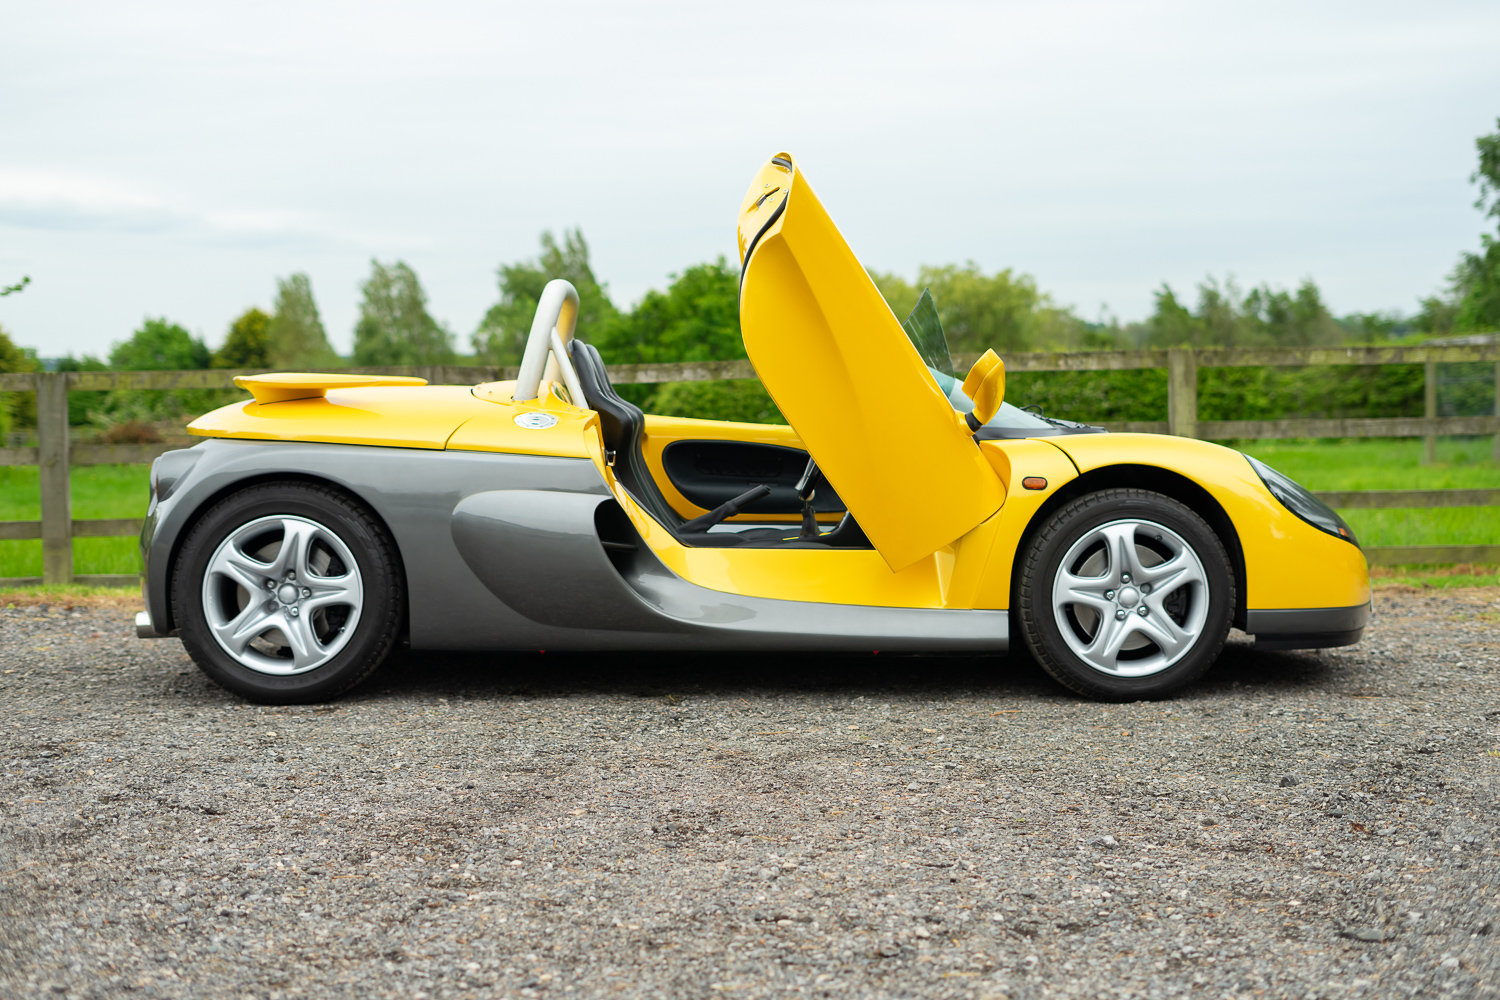 1998 Renault Sport Spider For Sale (picture 2 of 6)